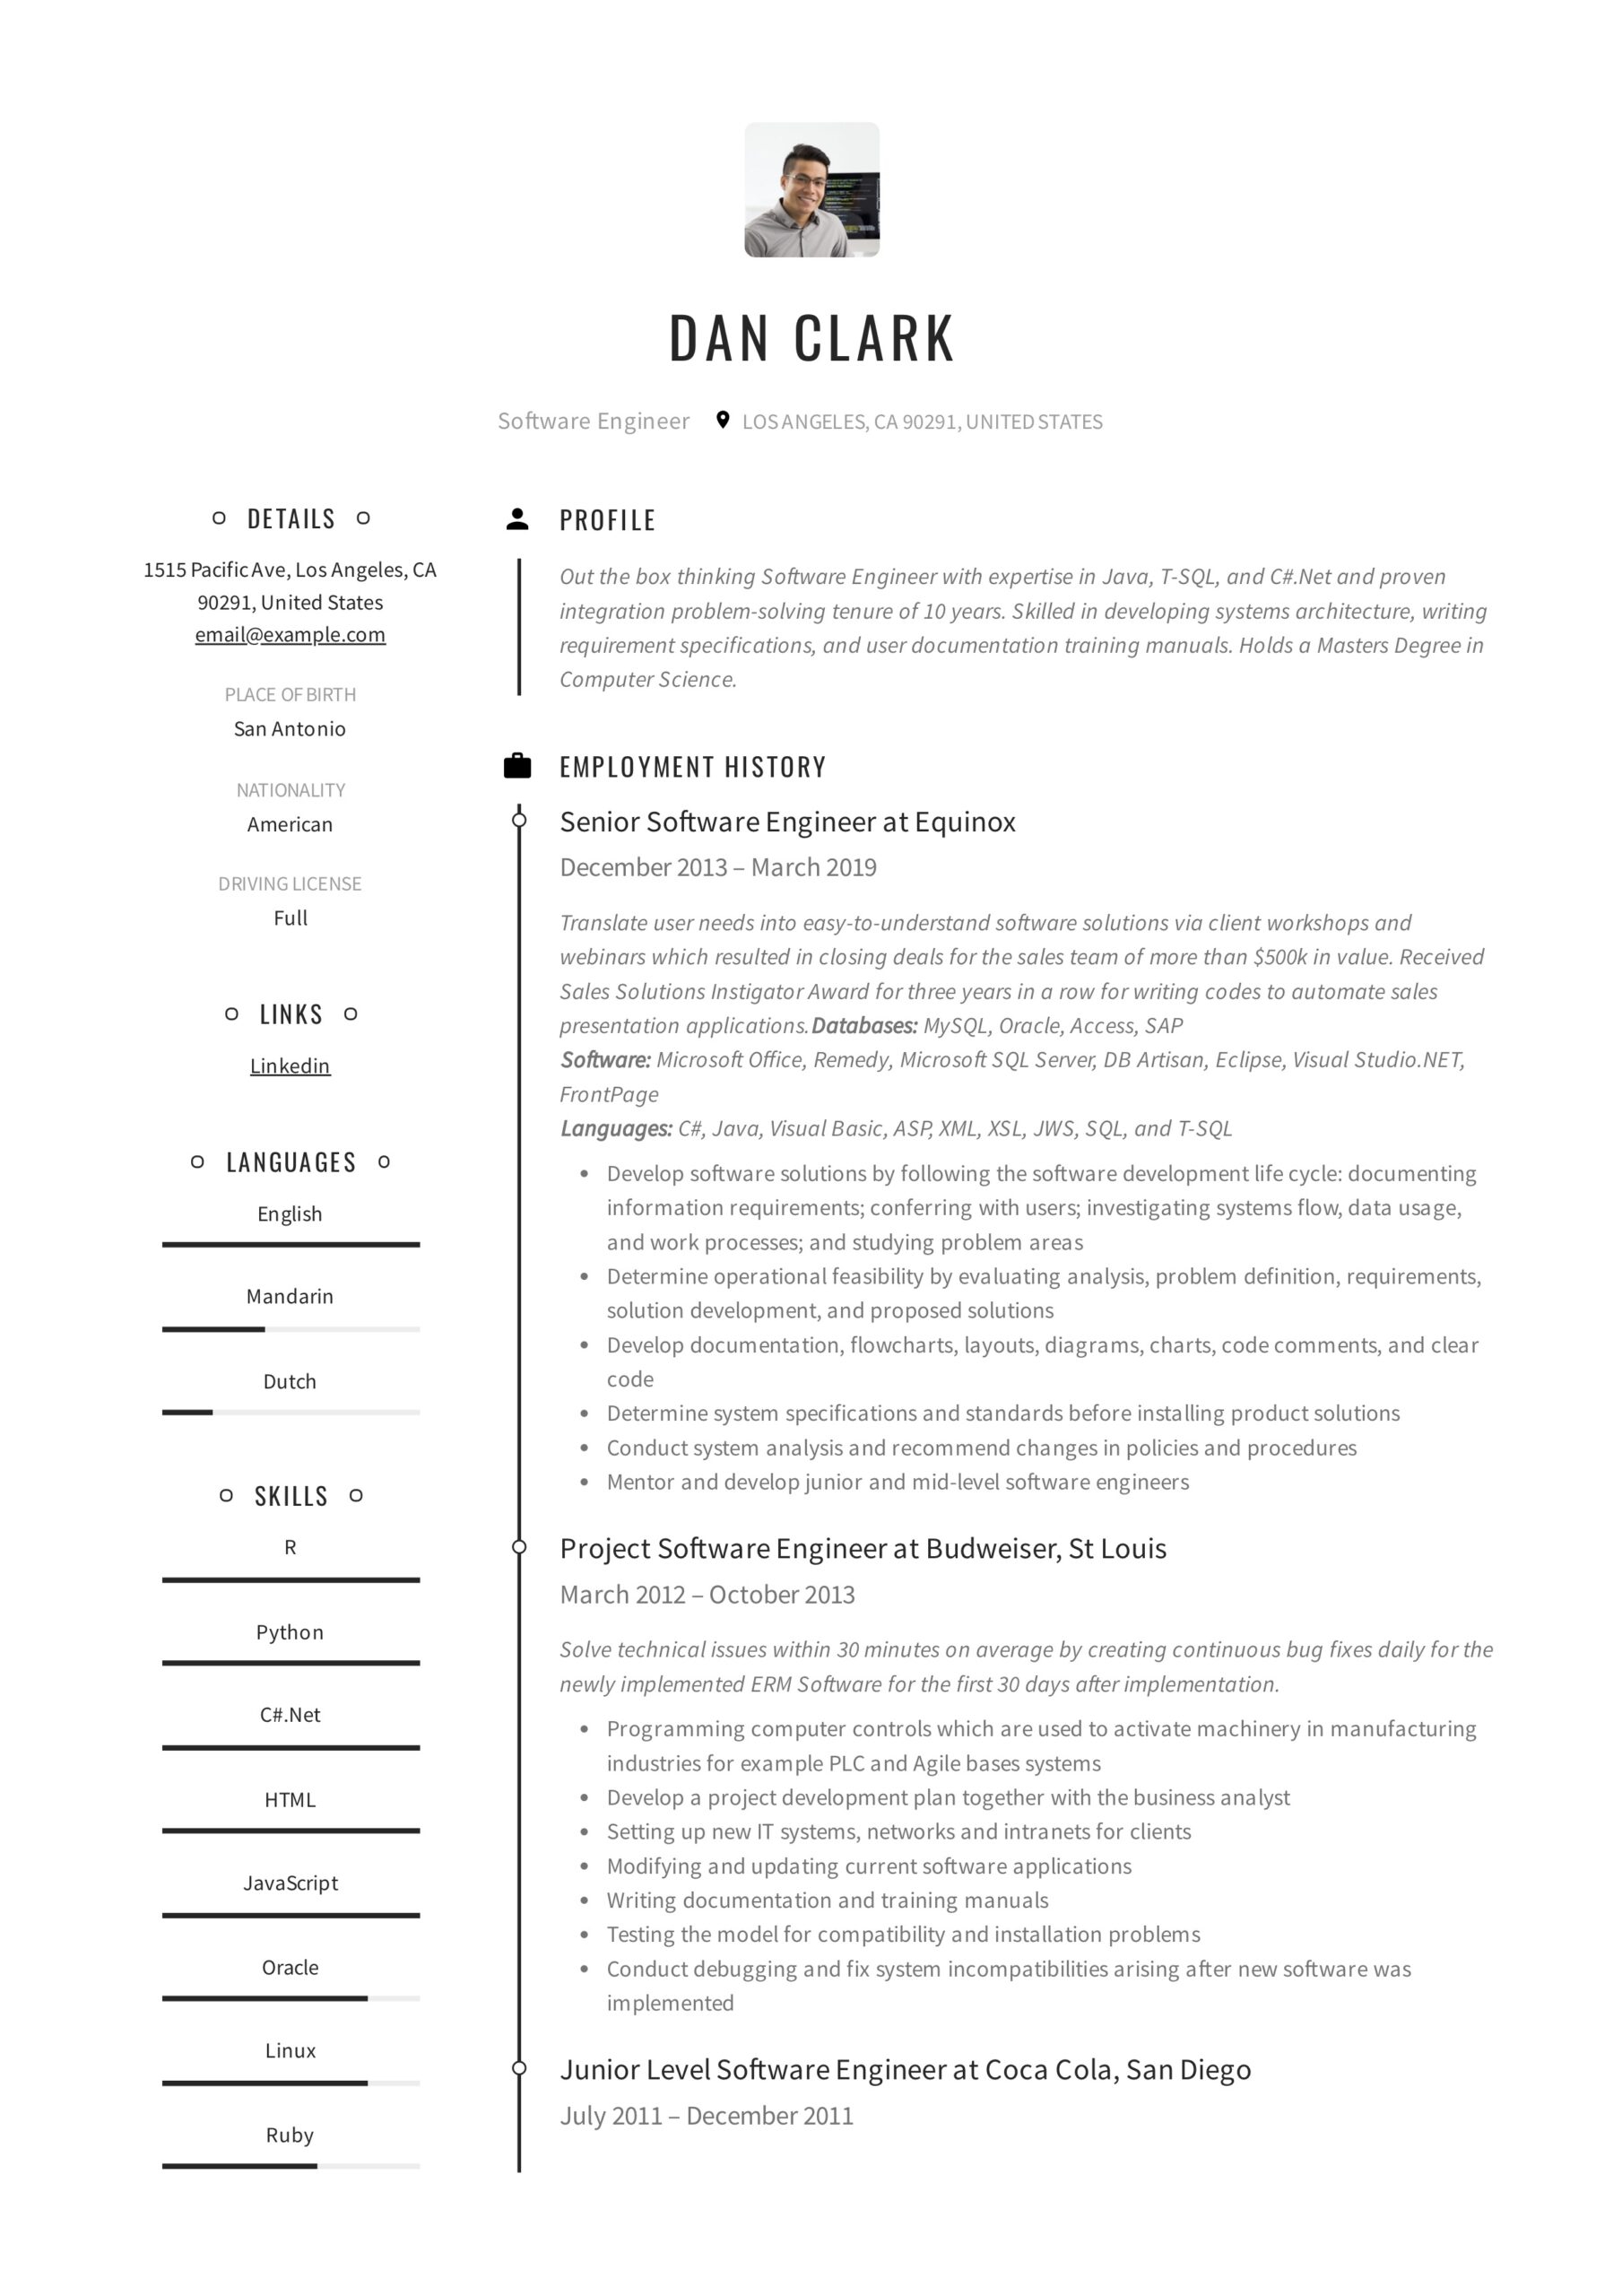 resume templates pdf word free downloads and guides examples dan software engineer Resume Free Resume Examples 2020